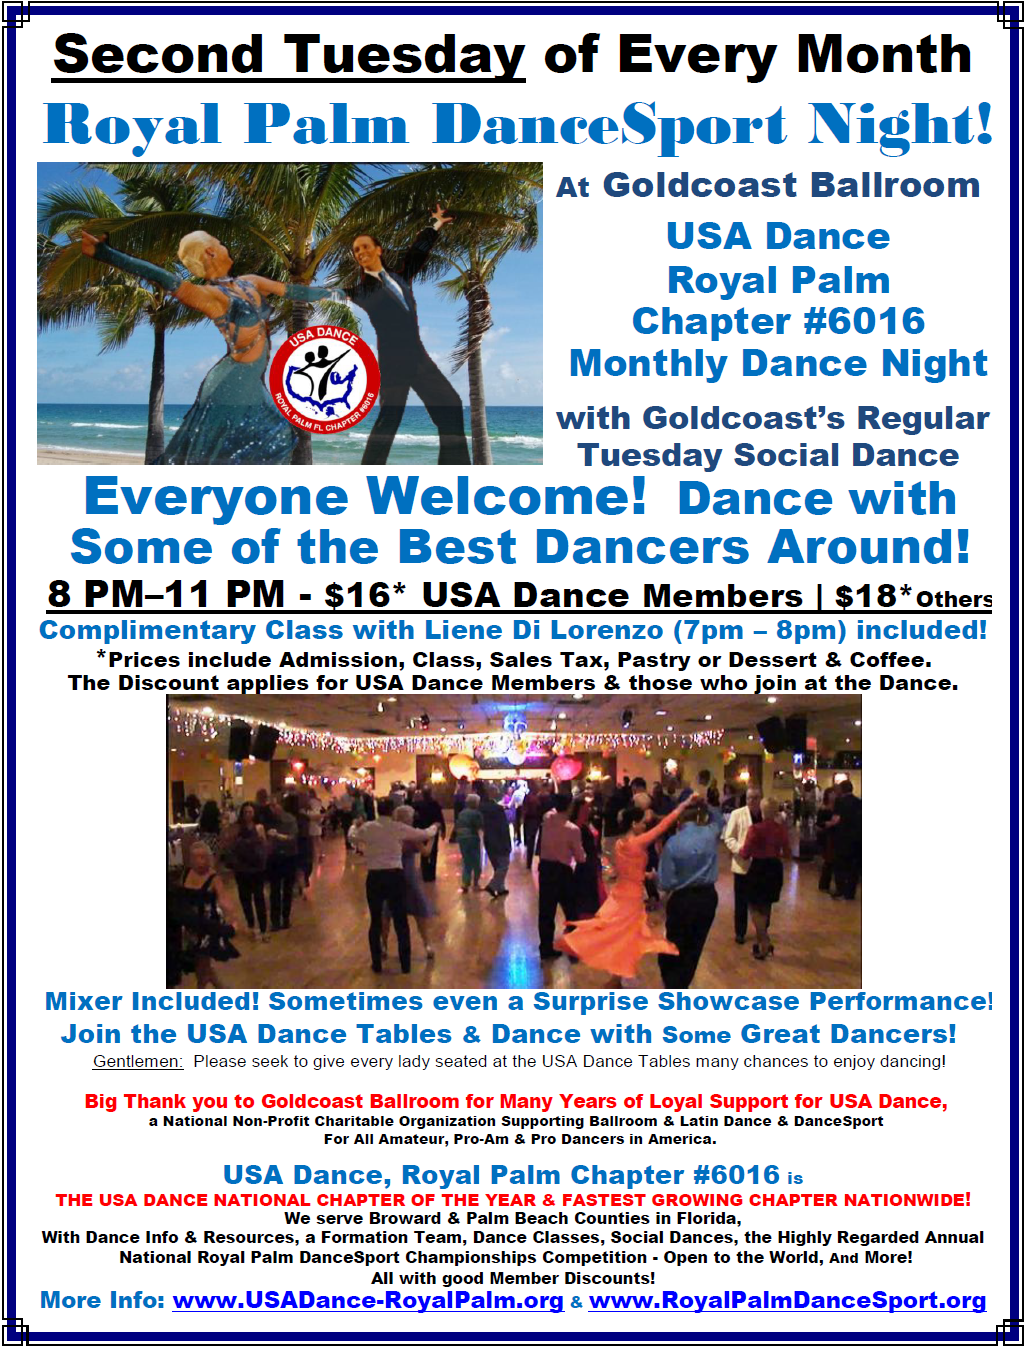 USA Dance, Royal Palm Chapter Monthly Dance - 2nd Tuesday of Each Month at Goldcoast Ballroom